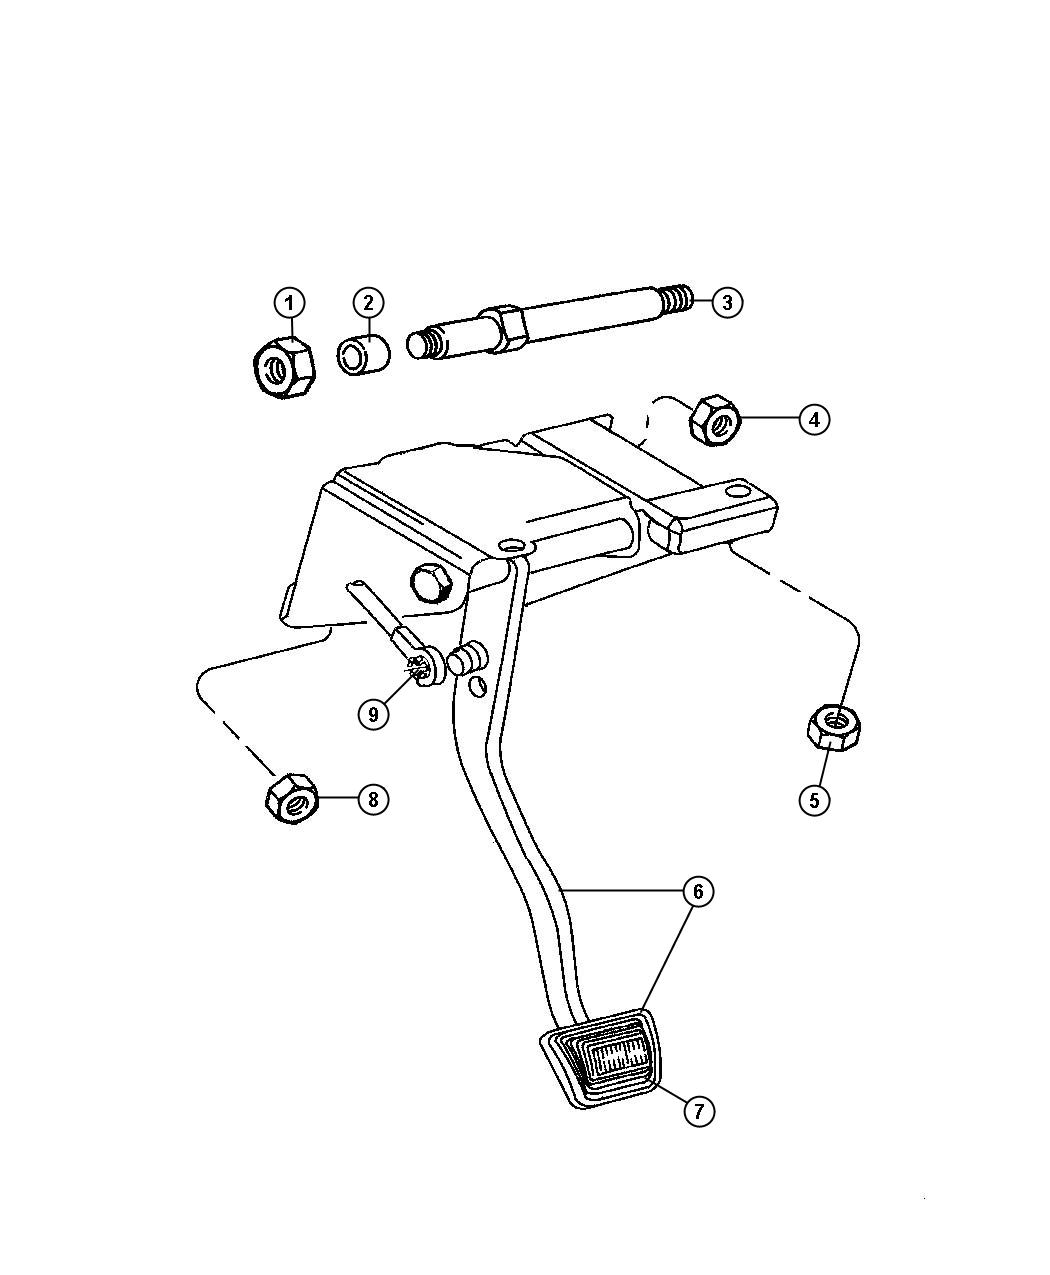 Jeep Wrangler Pedal Used For Brake And Clutch All